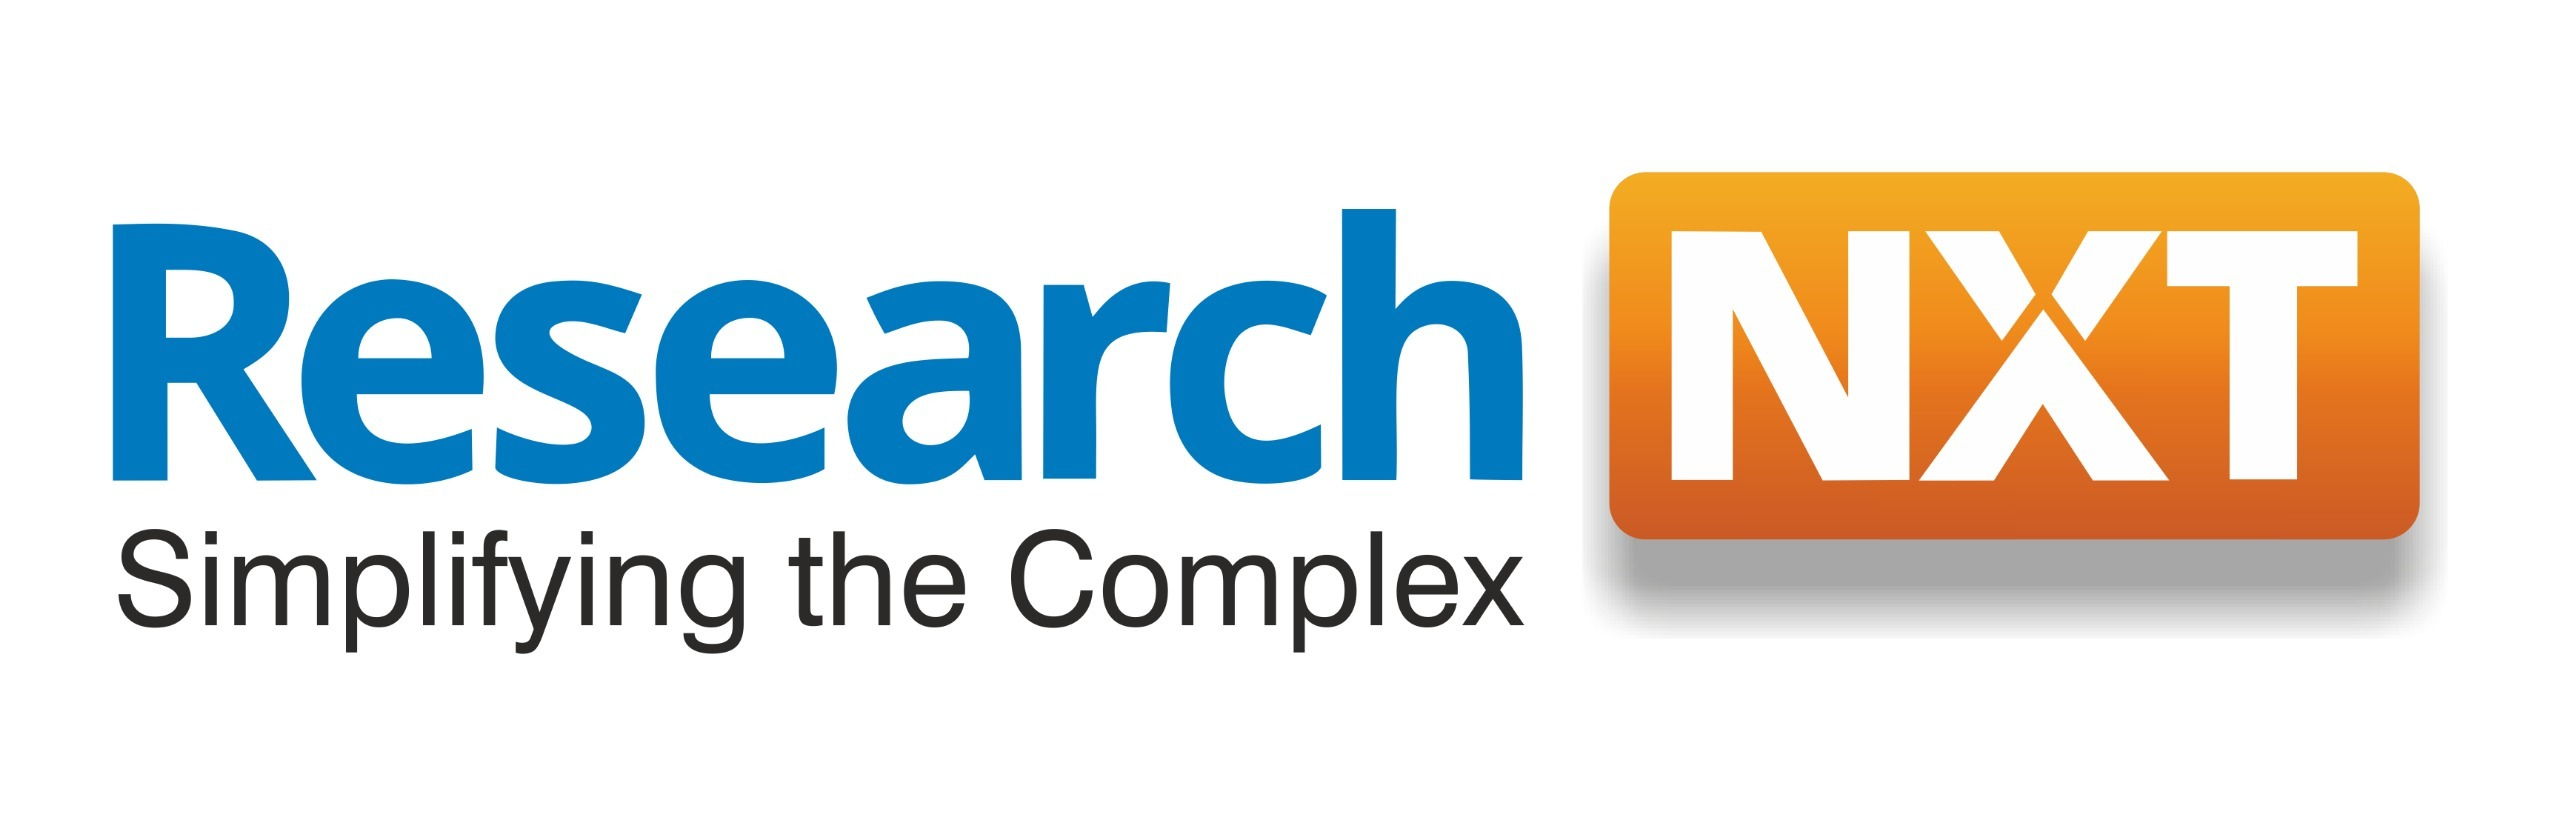 ResearchNXT (@researchnxt) Cover Image